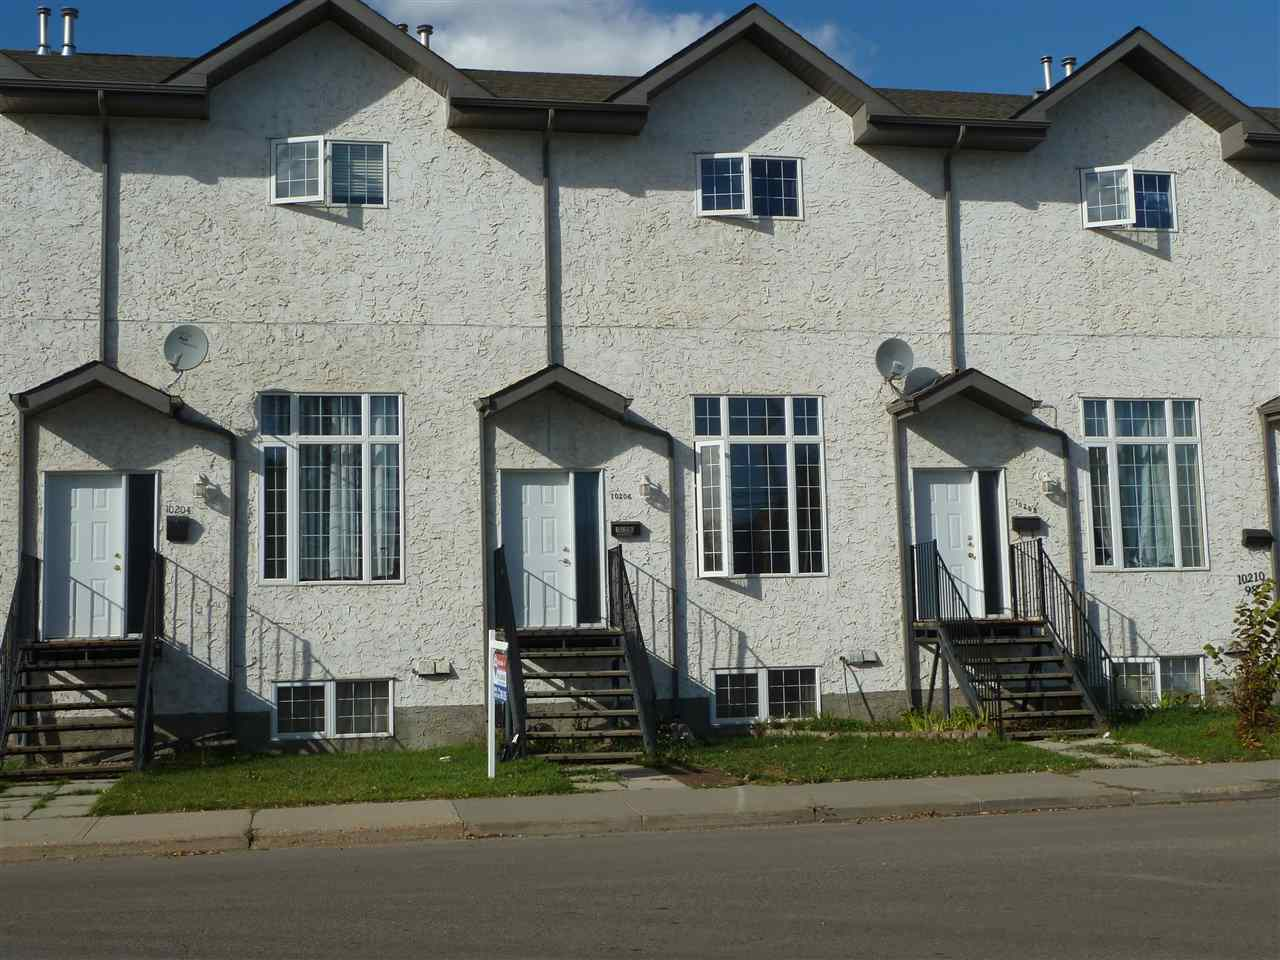 """Downtown location with easy access to schools, shopping & walking trails. A unique well-designed home. Walk into the 1st level c/w entertainment center, corner gas fireplace & 12 ft.  ceiling. A few stairs lead to a large dining & kitchen area. Functionally designed, large kitchen with ample cabinet & counter space. Patio doors leads to a large balcony for barbecuing. Upstairs includes two bedrooms. The MBR has been renovated to enlarge space as well as include an surprising walk in closet & ?Jack-Jill"""" door leading into a 4-piece bathroom. A large 2nd bedroom includes its own walk in closet as well as a 3-piece bathroom then add the brand-new flooring finishes off 3rd floor upgrades. Still need an extra bedroom? The basement serves as bedroom or entertainment area for your family needs. An abundance of natural light on every level creates an openness throughout the home. The oversized single car attached garage provides vehicle & storage space. Priced well for any budget this is a home worth viewing!"""